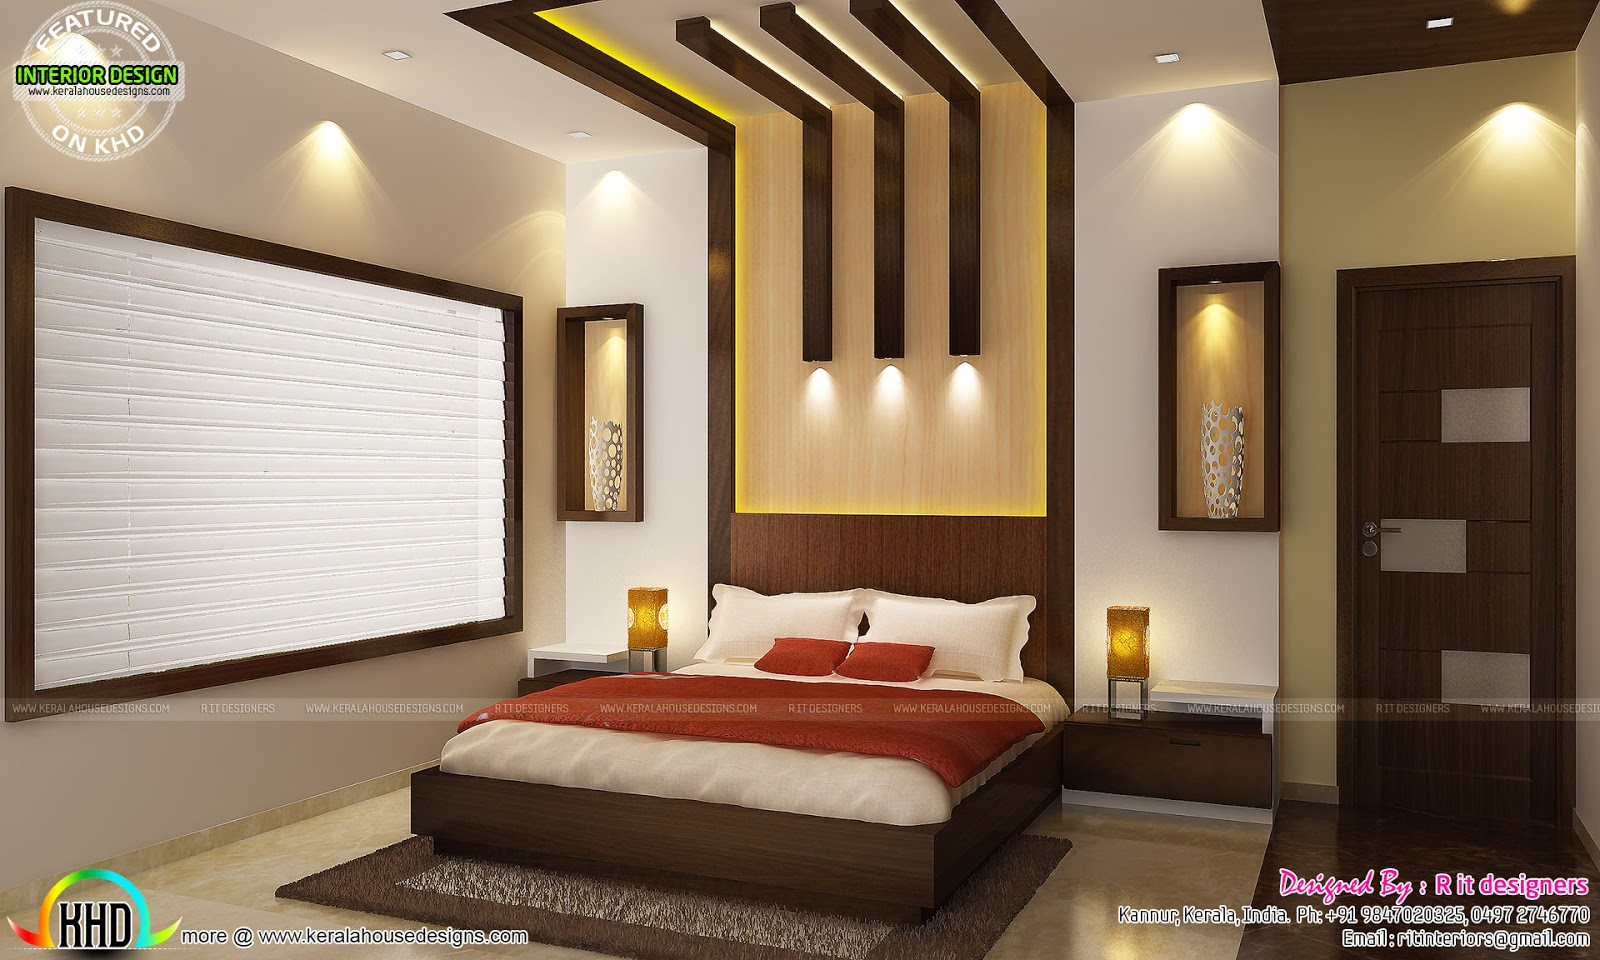 Kitchen living bedroom dining interior decor kerala home design and floor plans Home design ideas for bedrooms